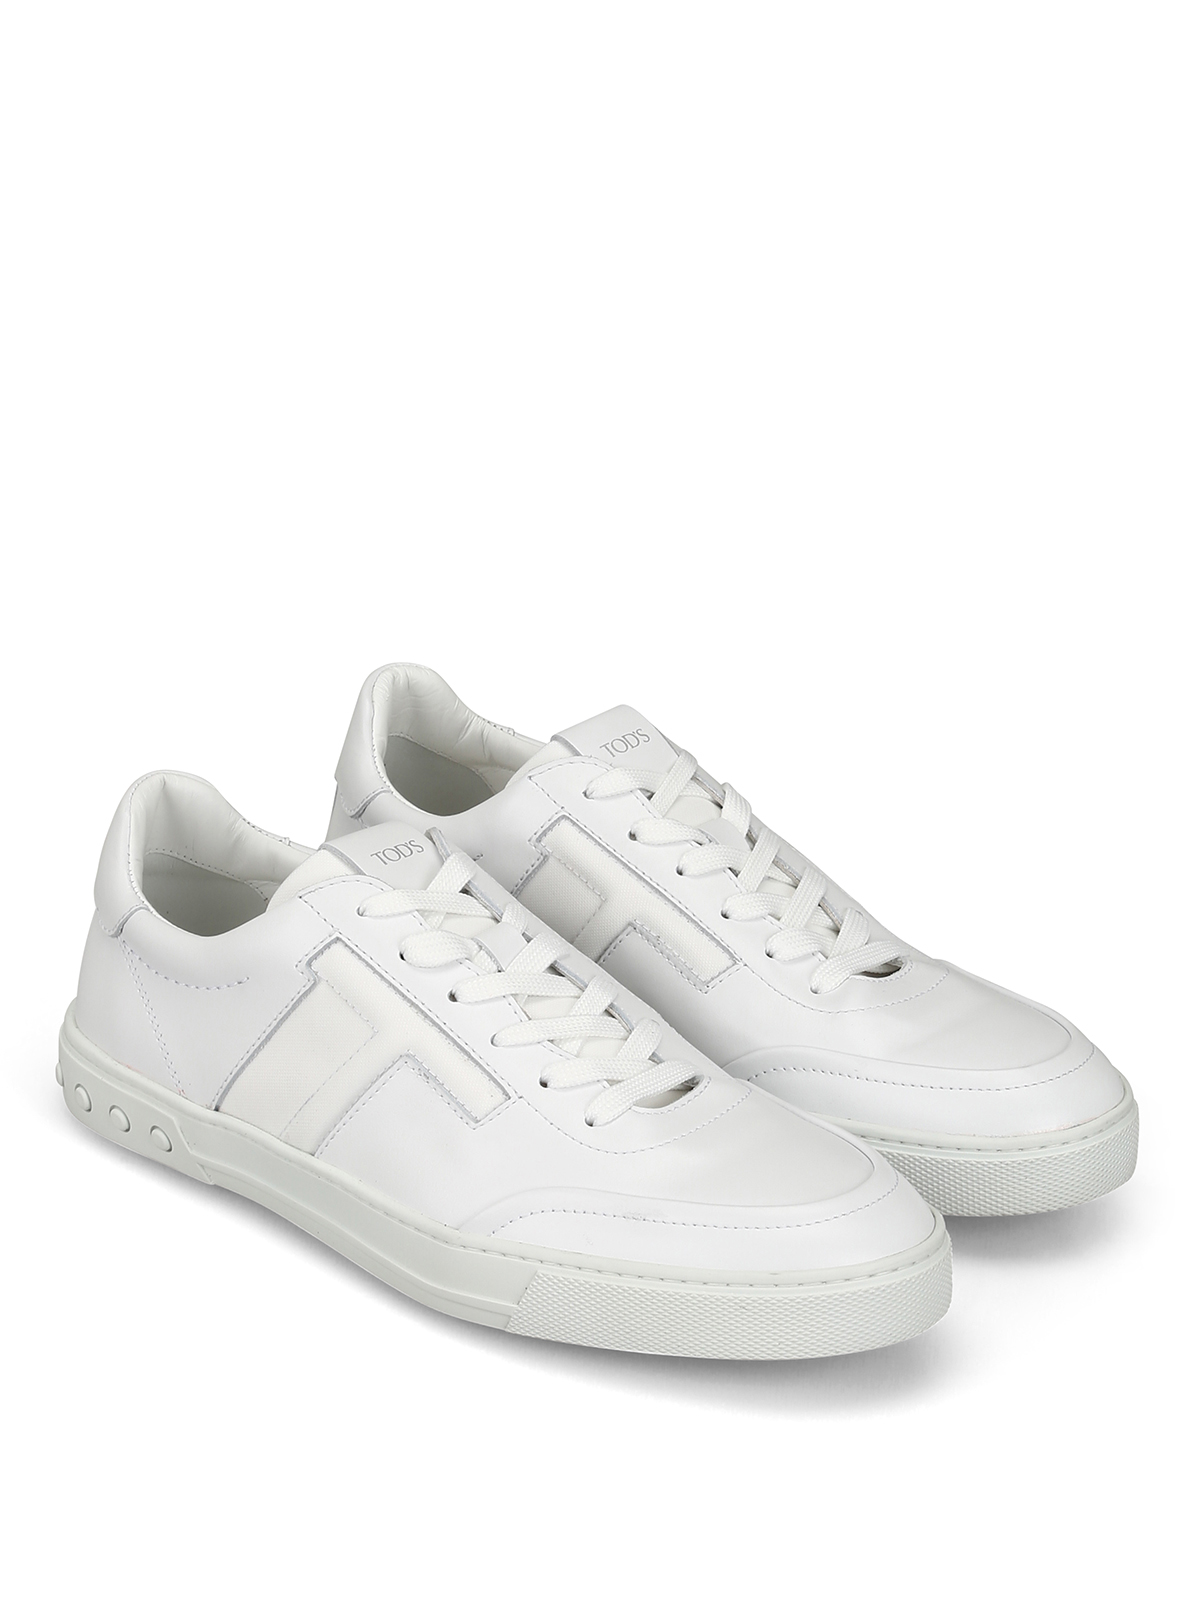 White leather low top urban sporty